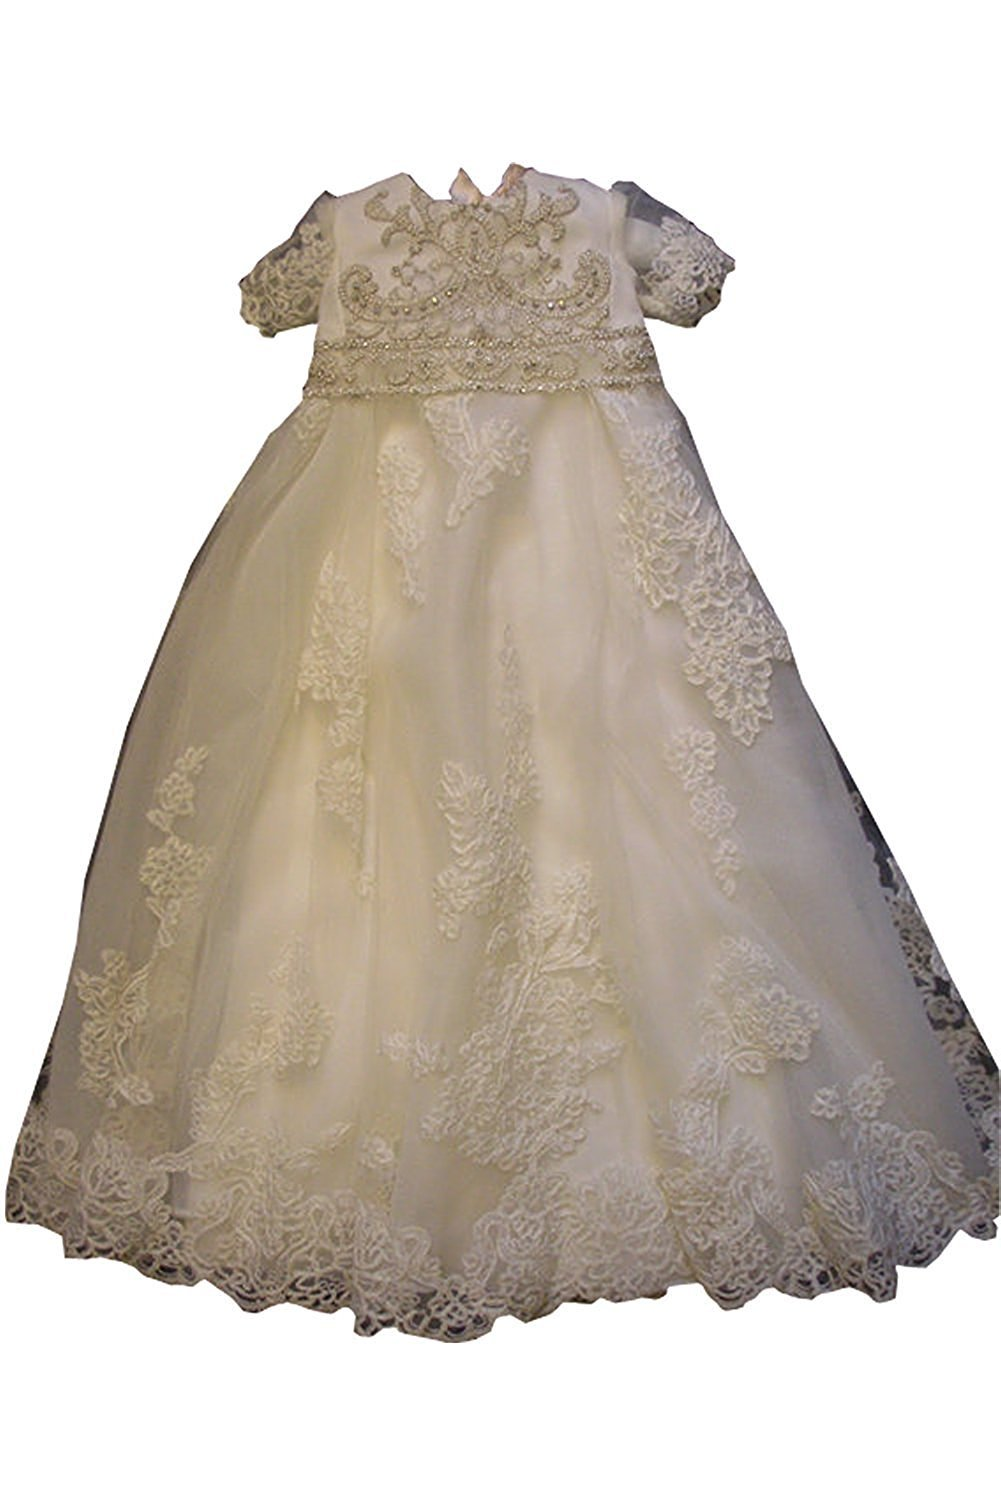 Banfvting Baby-girls Lace Pearls White Ivory Christening Baptism Gowns